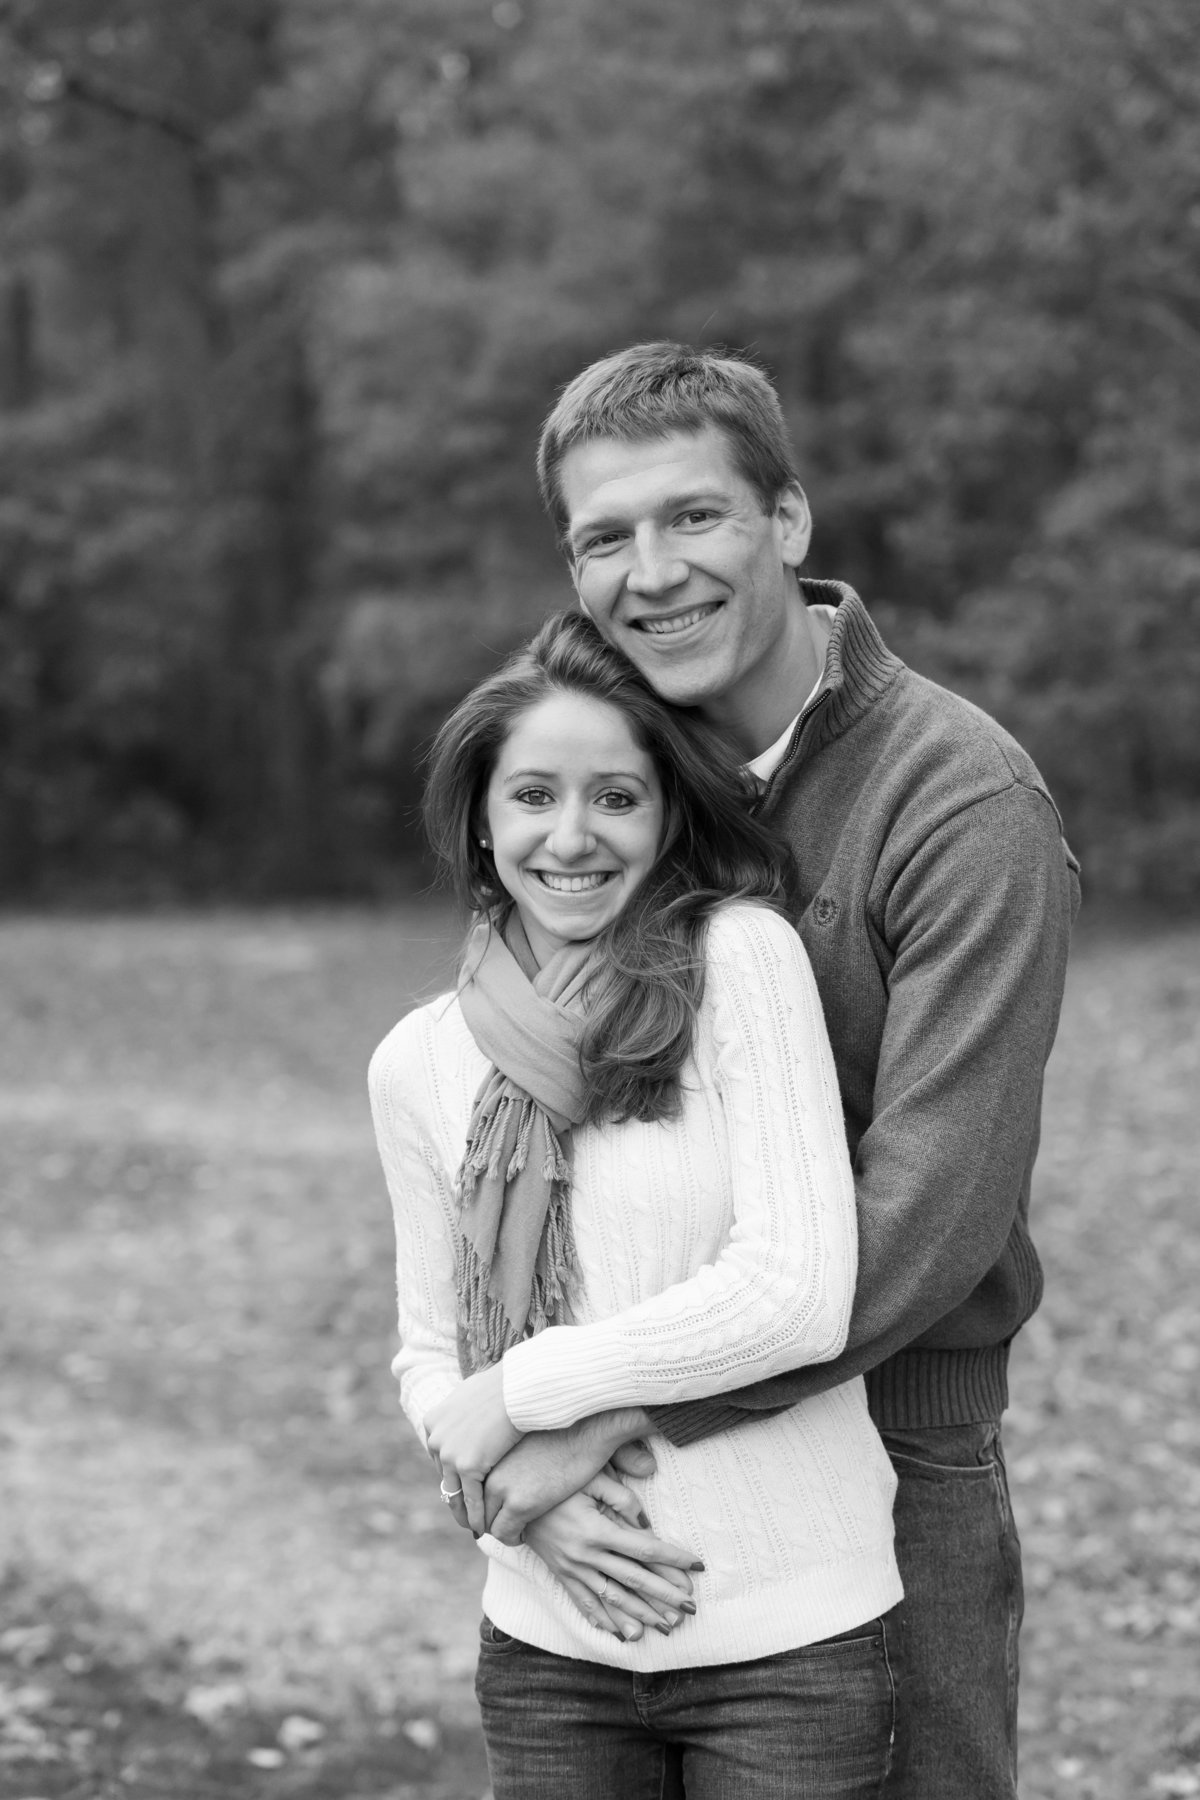 richmond_virginia_fall_engagement-02